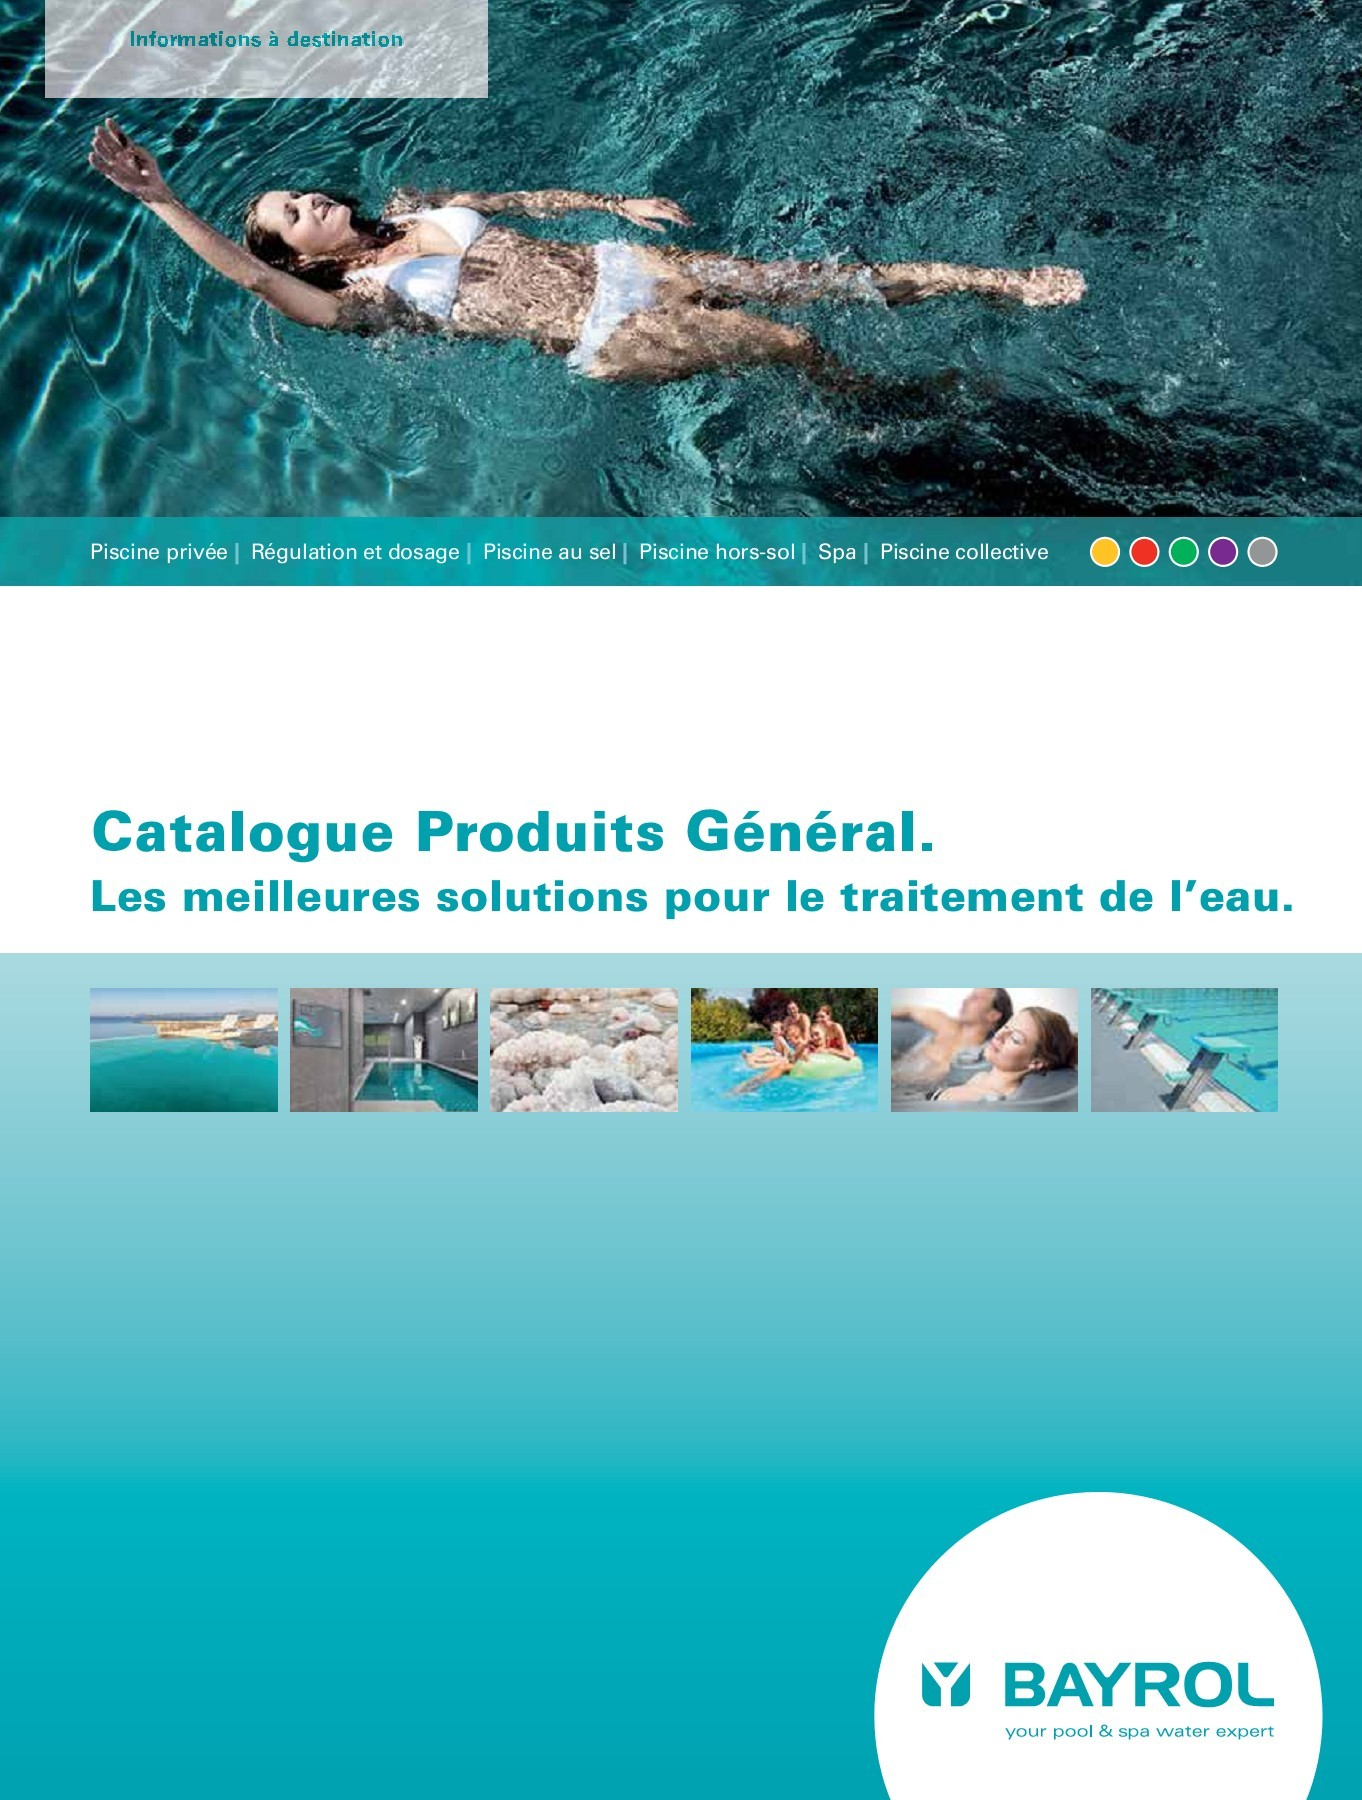 Eau De Piscine Laiteuse Catalogue Bayrol 2017 Pages 1 50 Text Version Fliphtml5